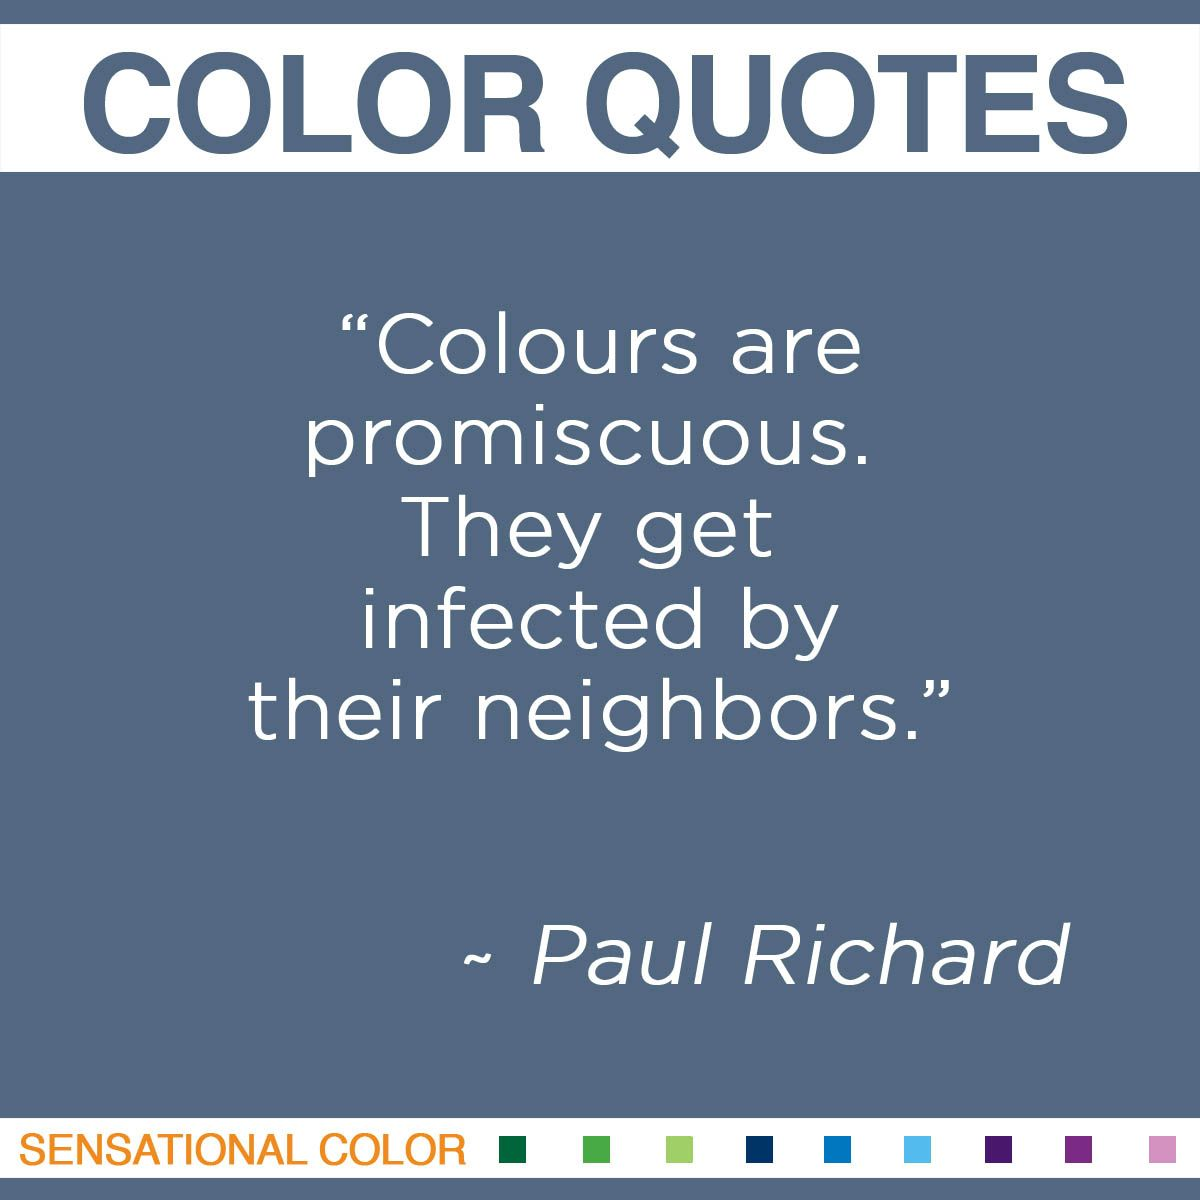 """Colours are promiscuous. They get infected by their neighbors."" - Paul Richard"